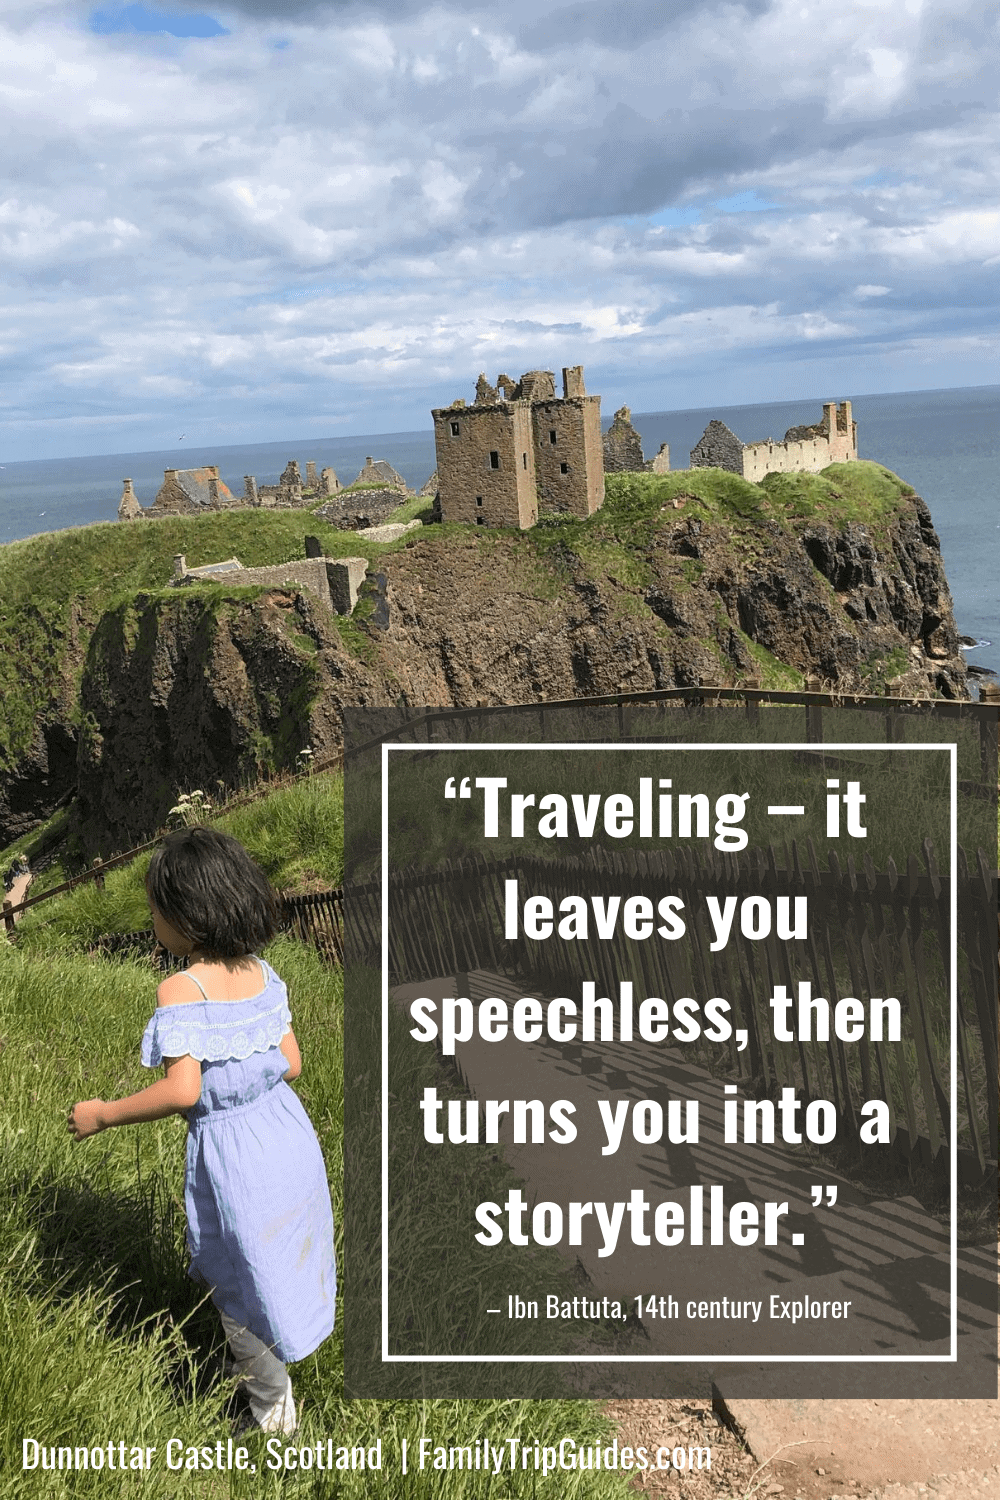 Ibn Battuta travel quote with Scottish castle and girl.